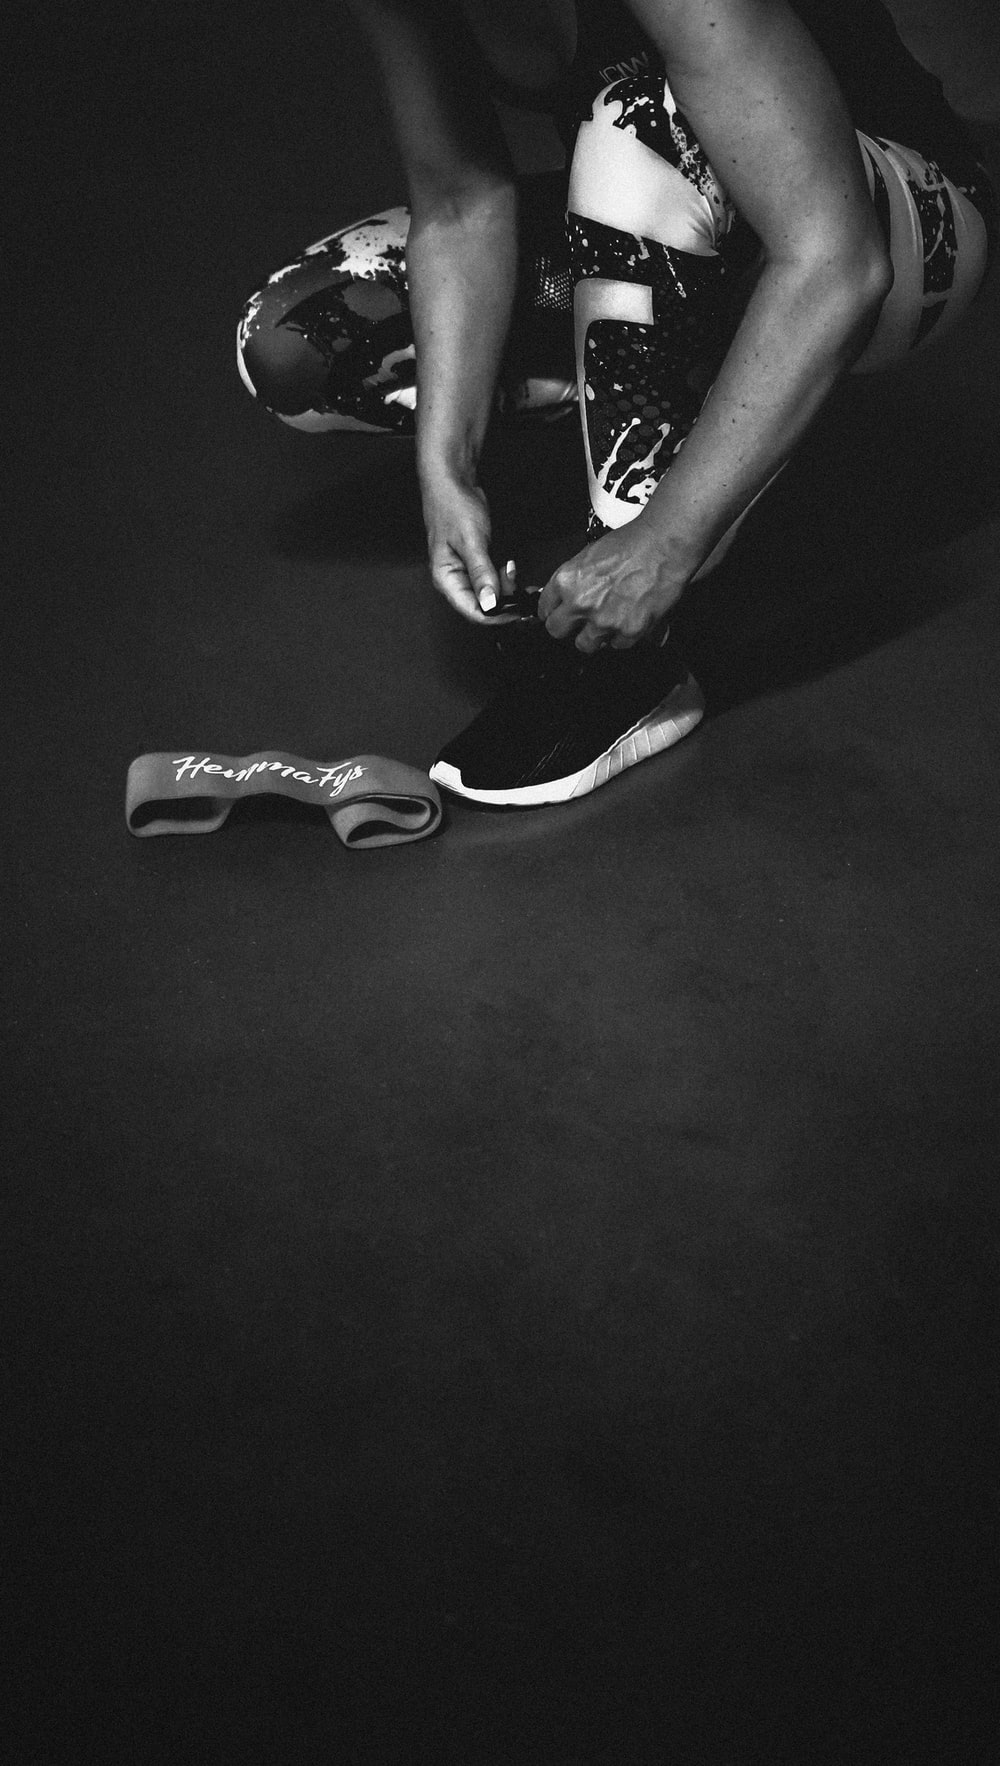 grayscale photo of person wearing sneakers